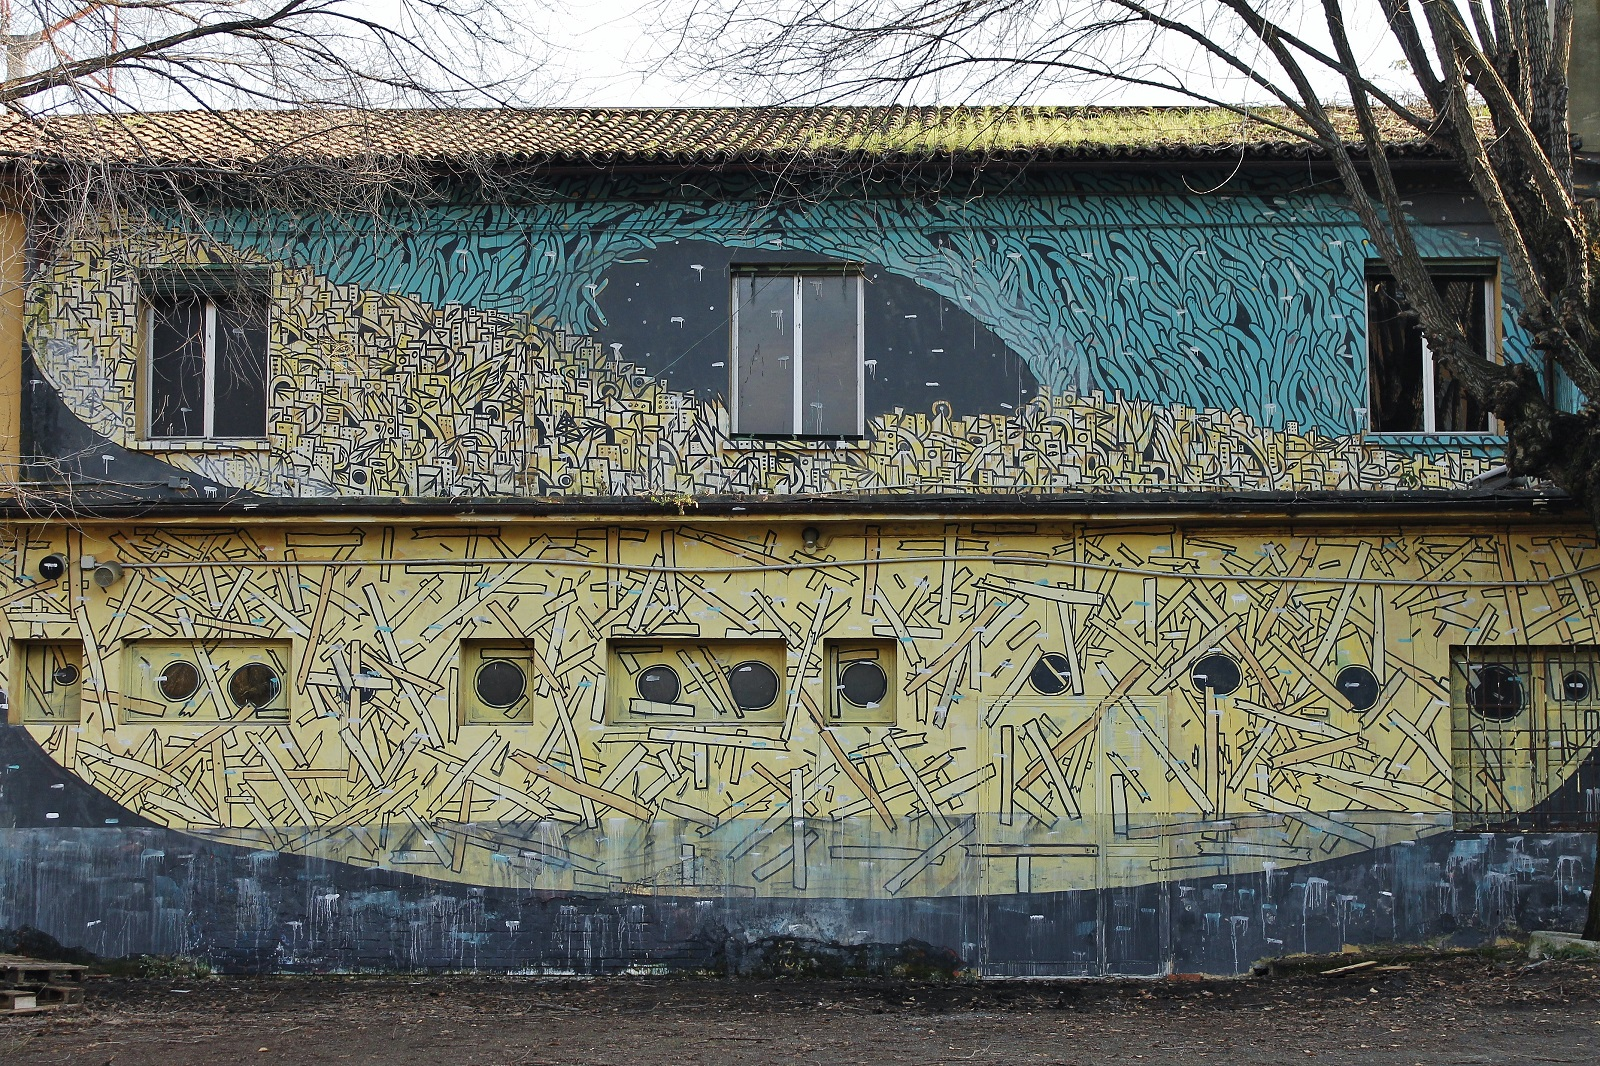 crisa-new-mural-at-labas-in-bologna-02